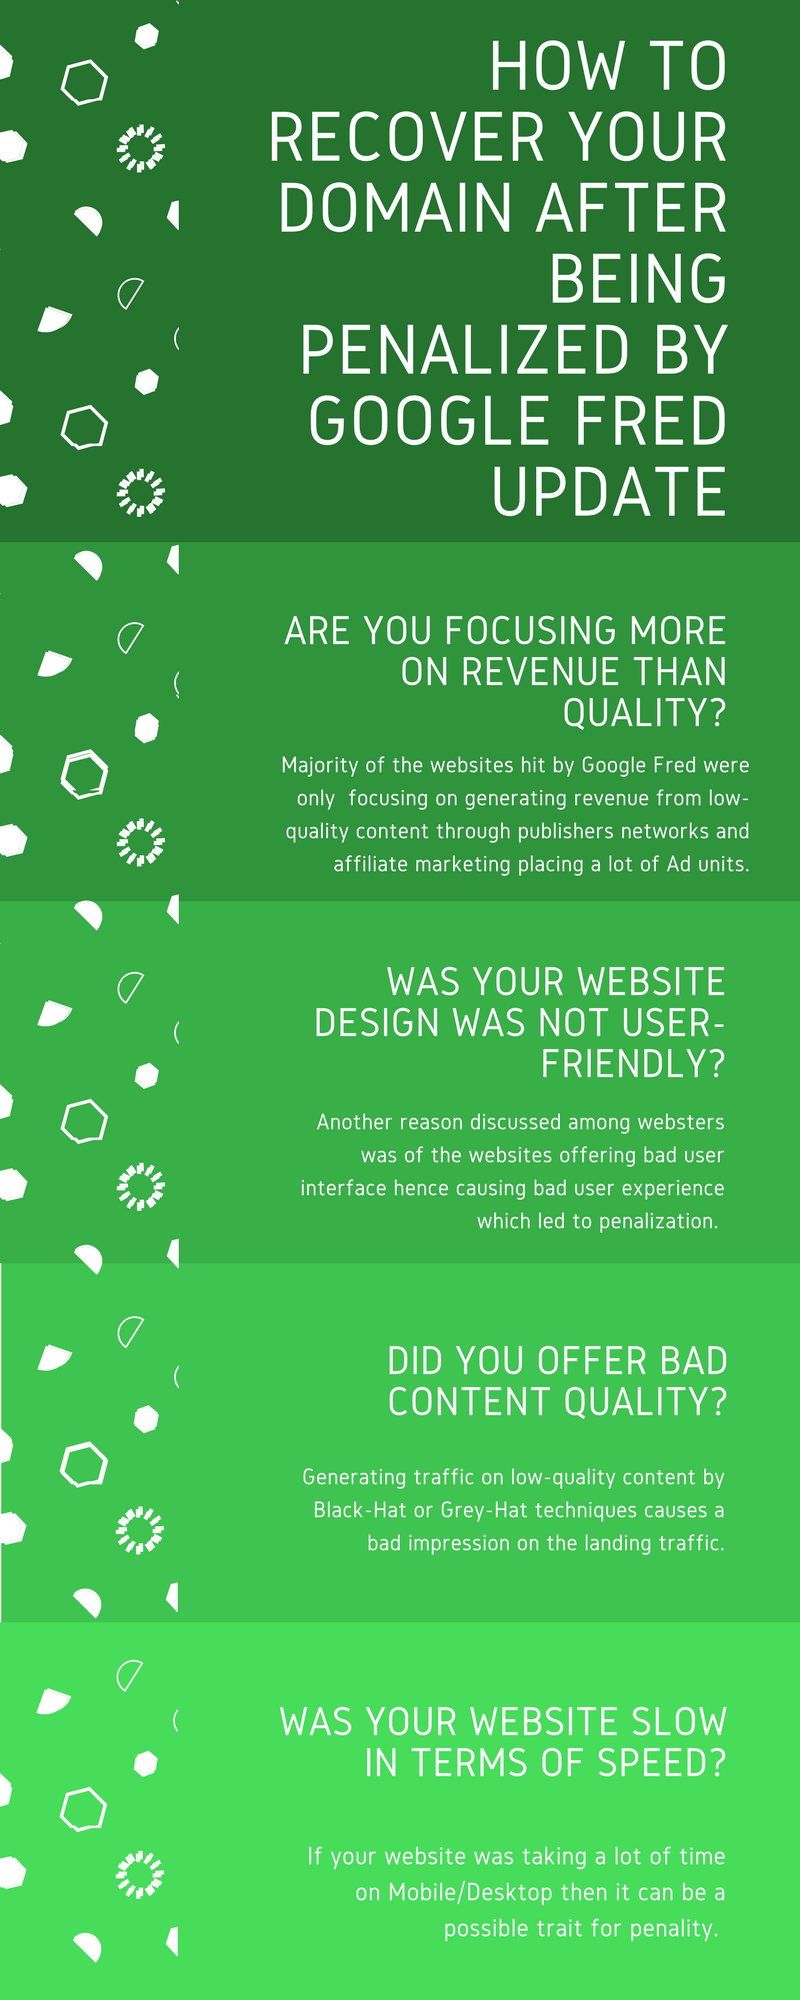 google fred recovery infographic